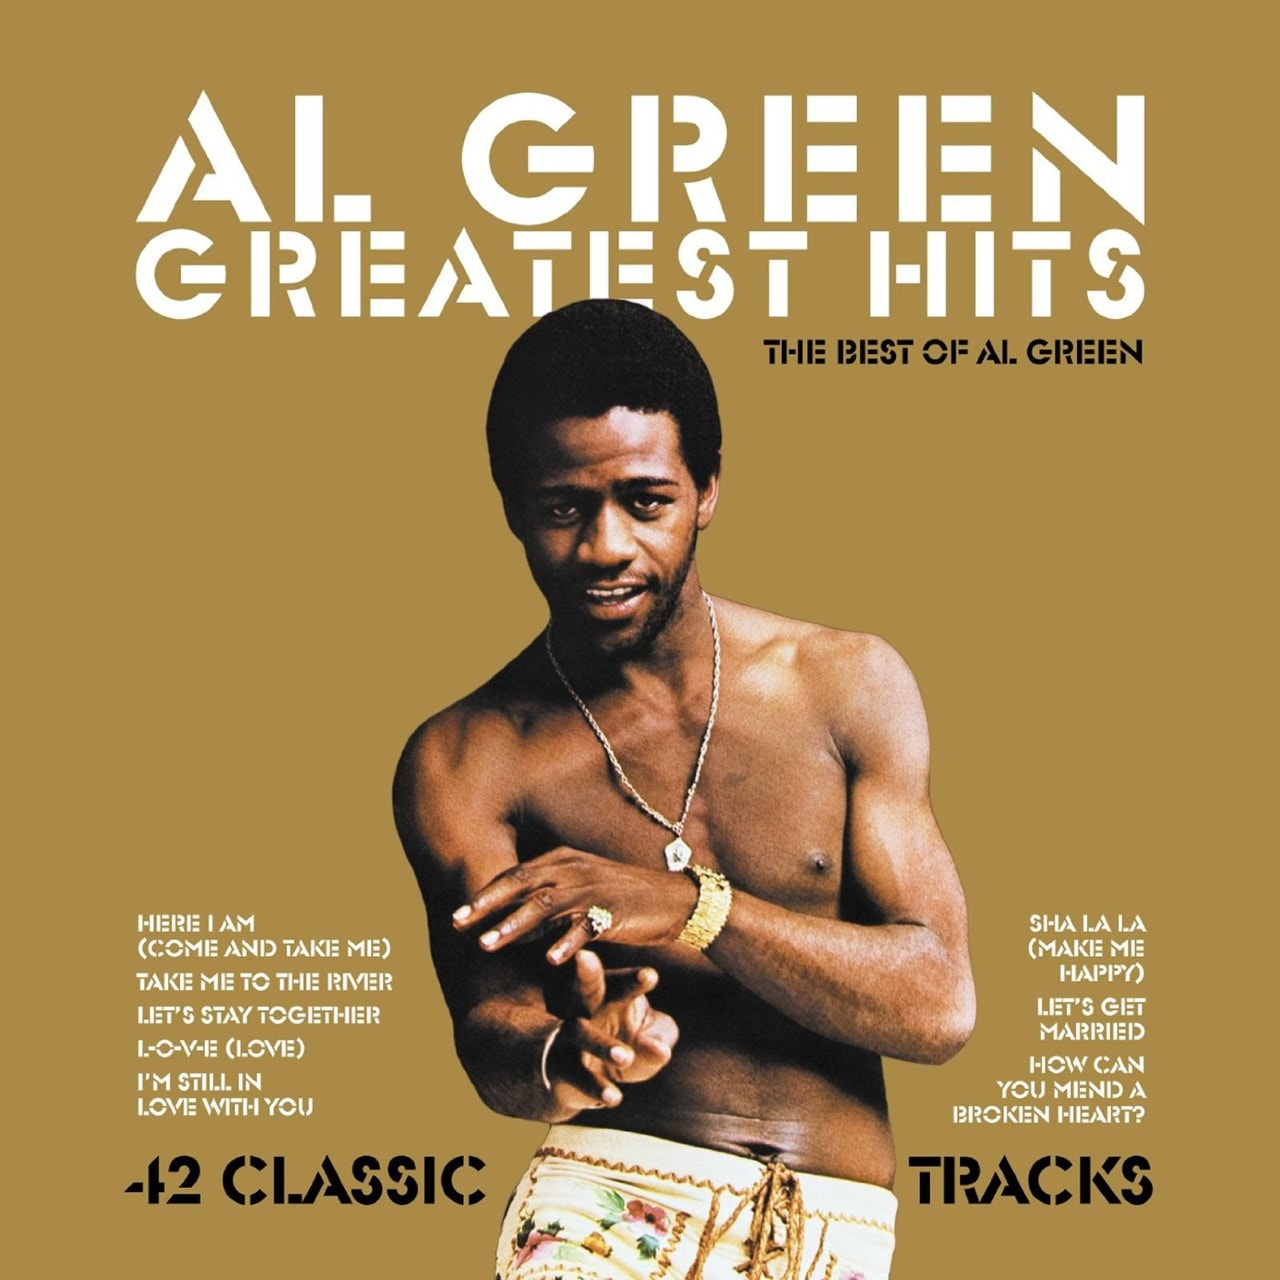 Greatest Hits: The Best of Al Green - 1